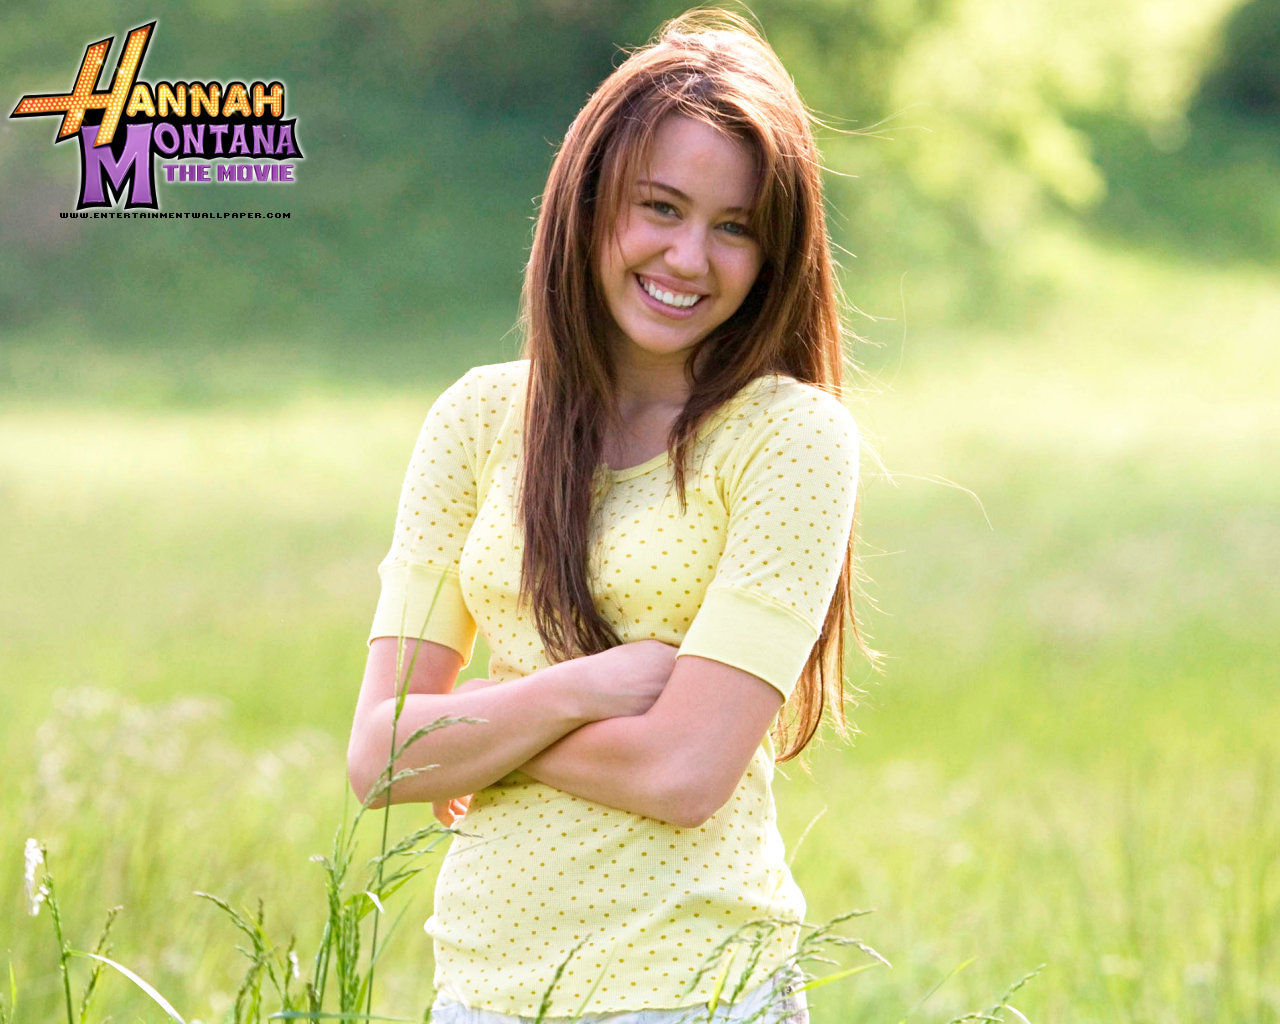 hannah montana wallpaper desktop wallpapersafari